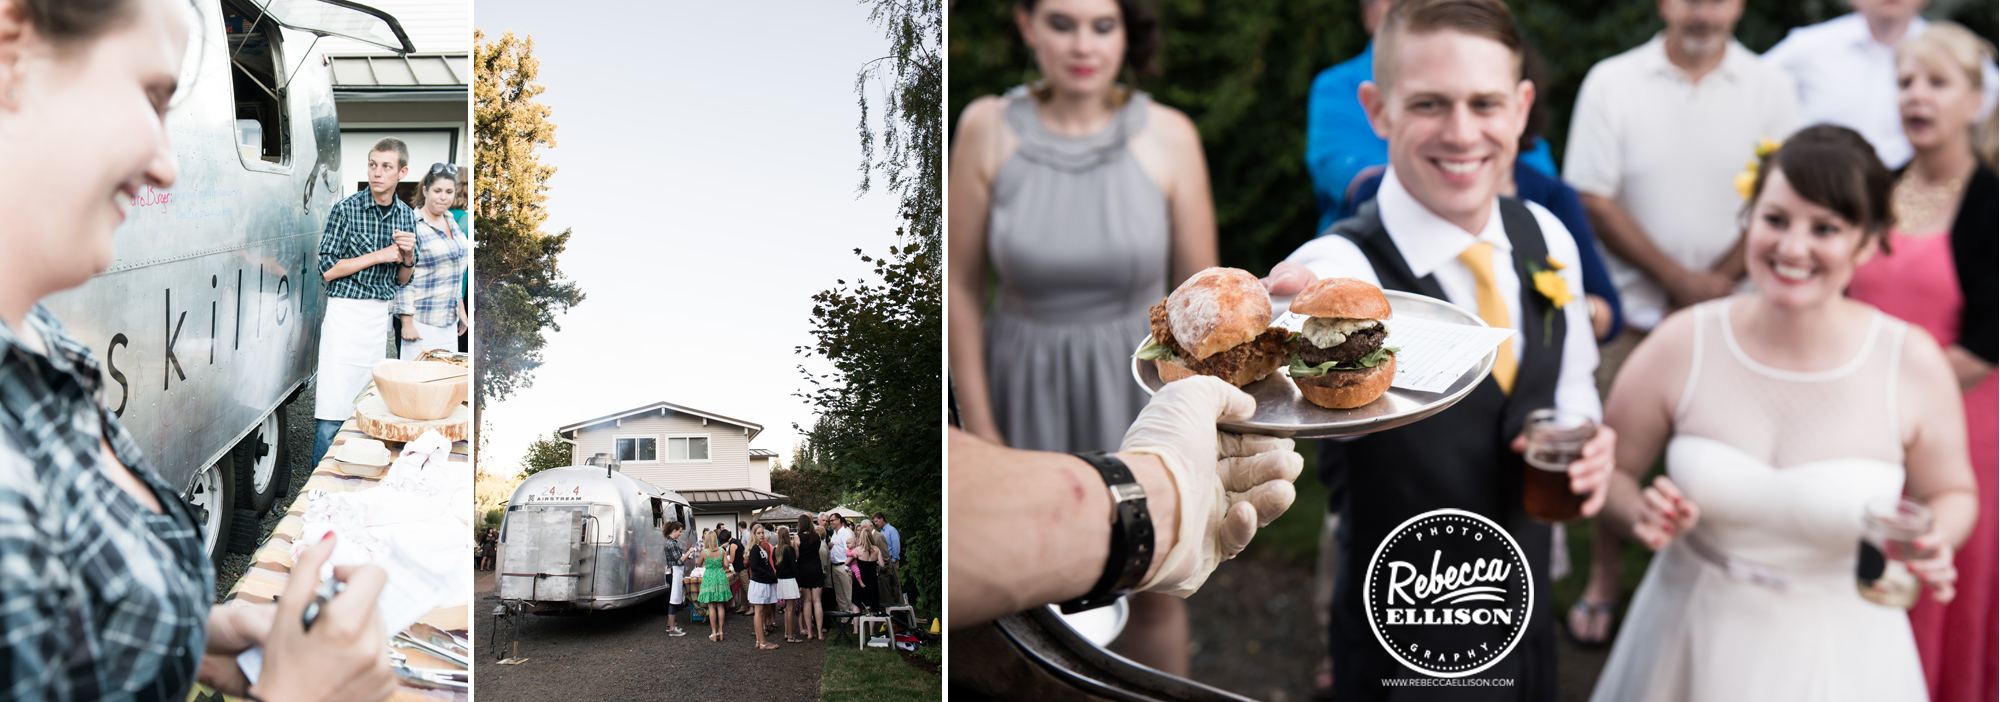 hot wedding trends for 2015 - food trucks